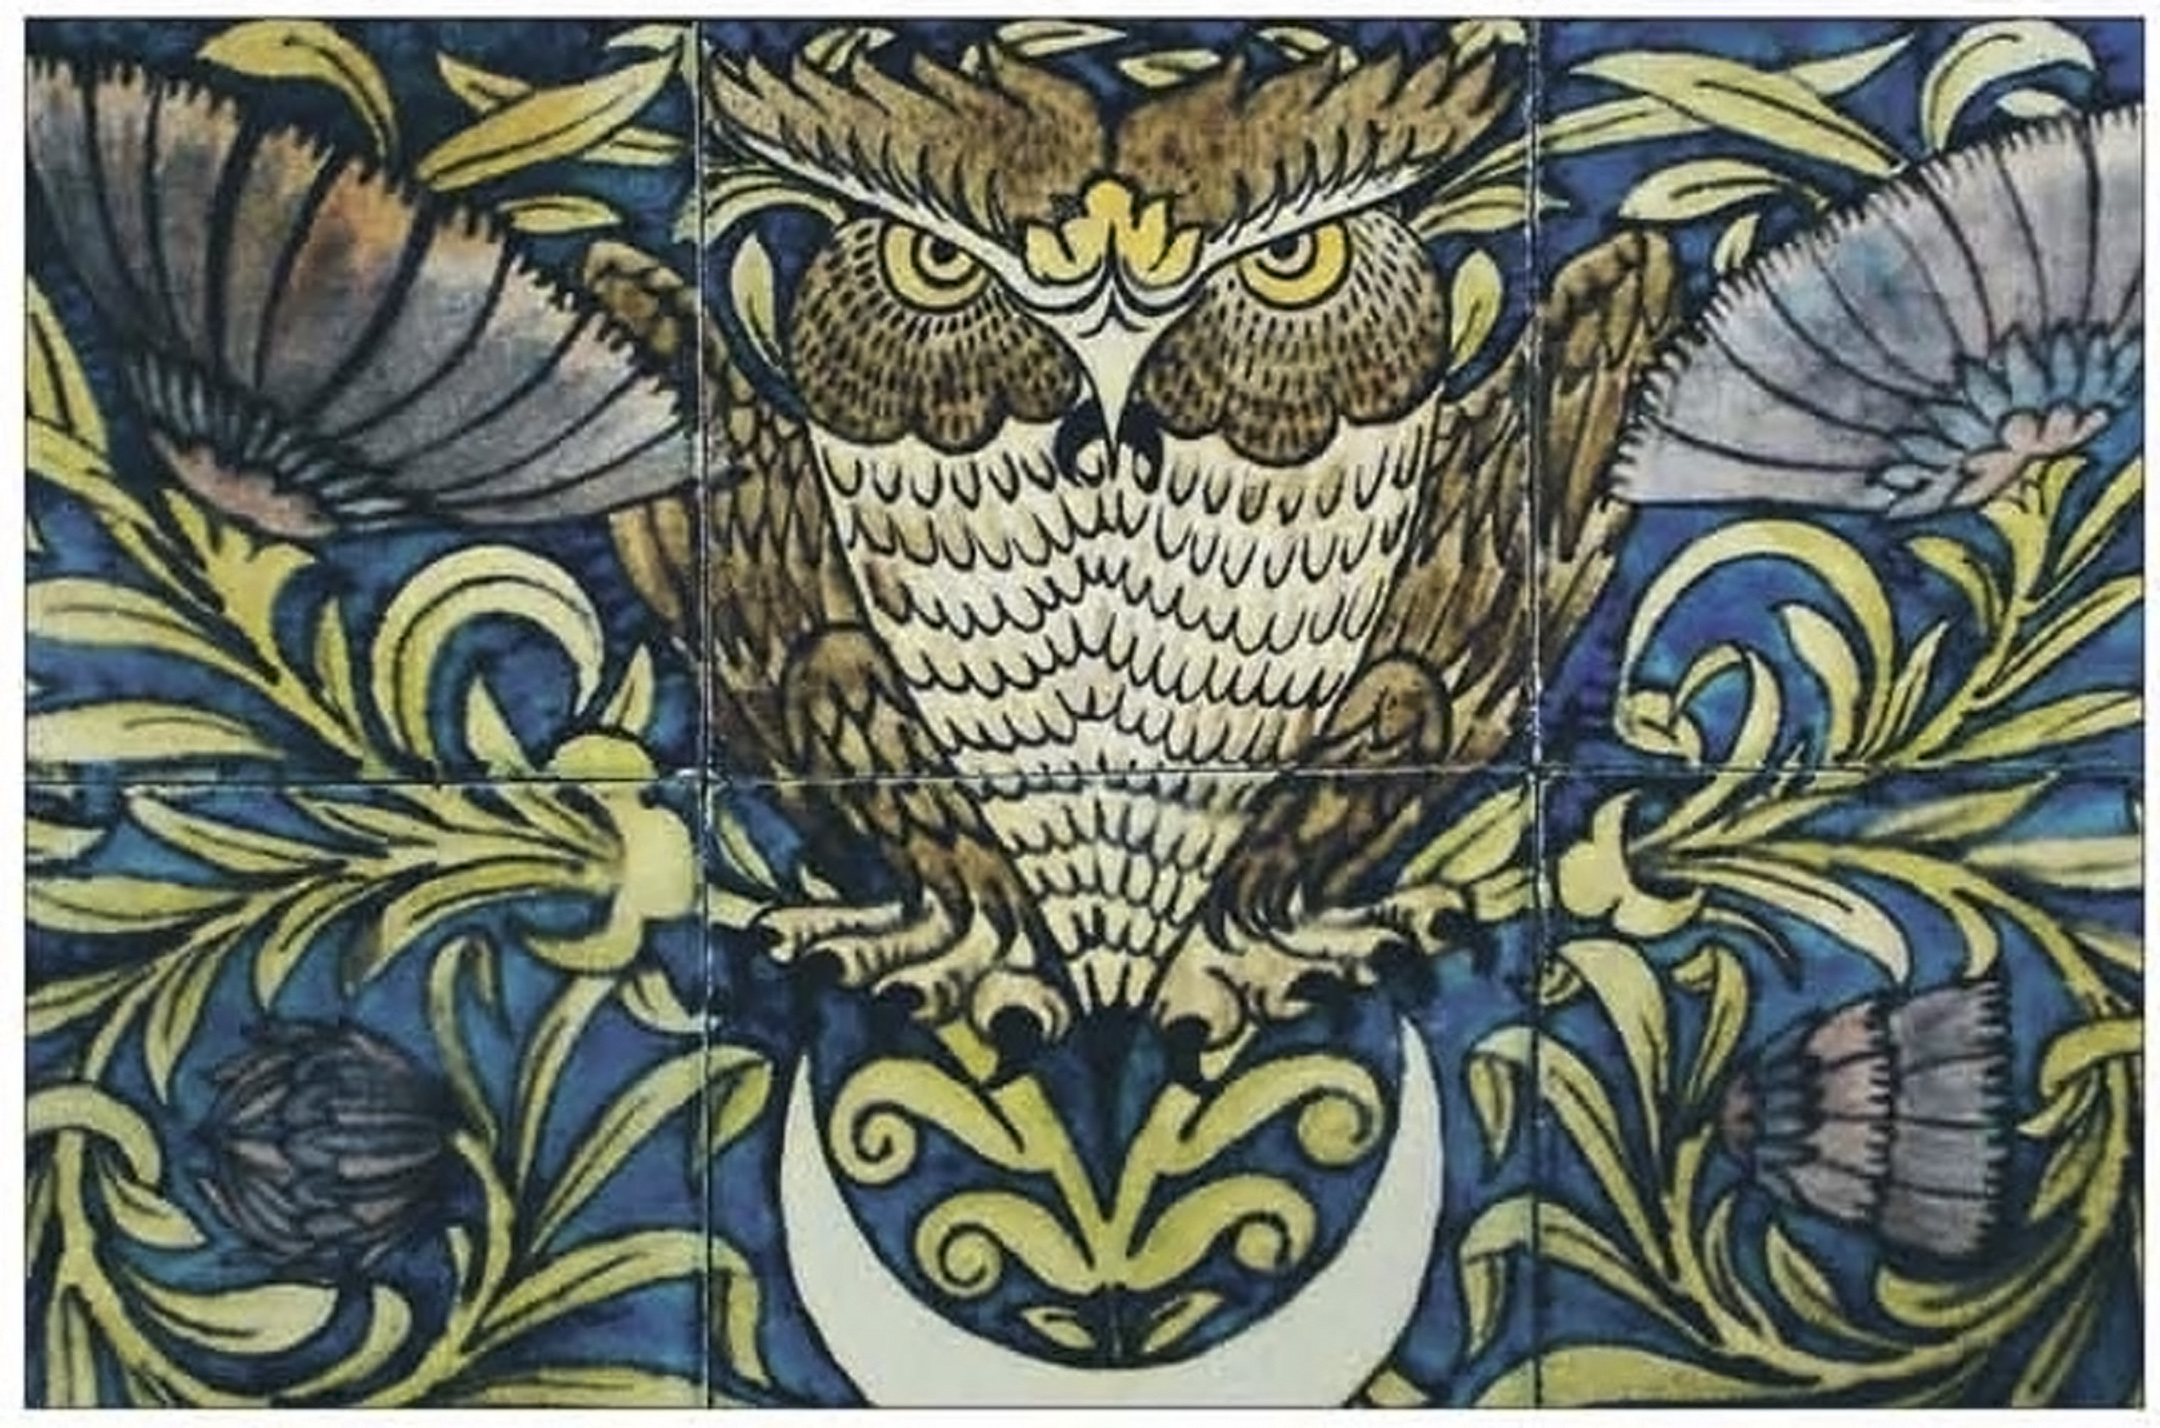 William De Morgan Merton Abby owl tile tile panel